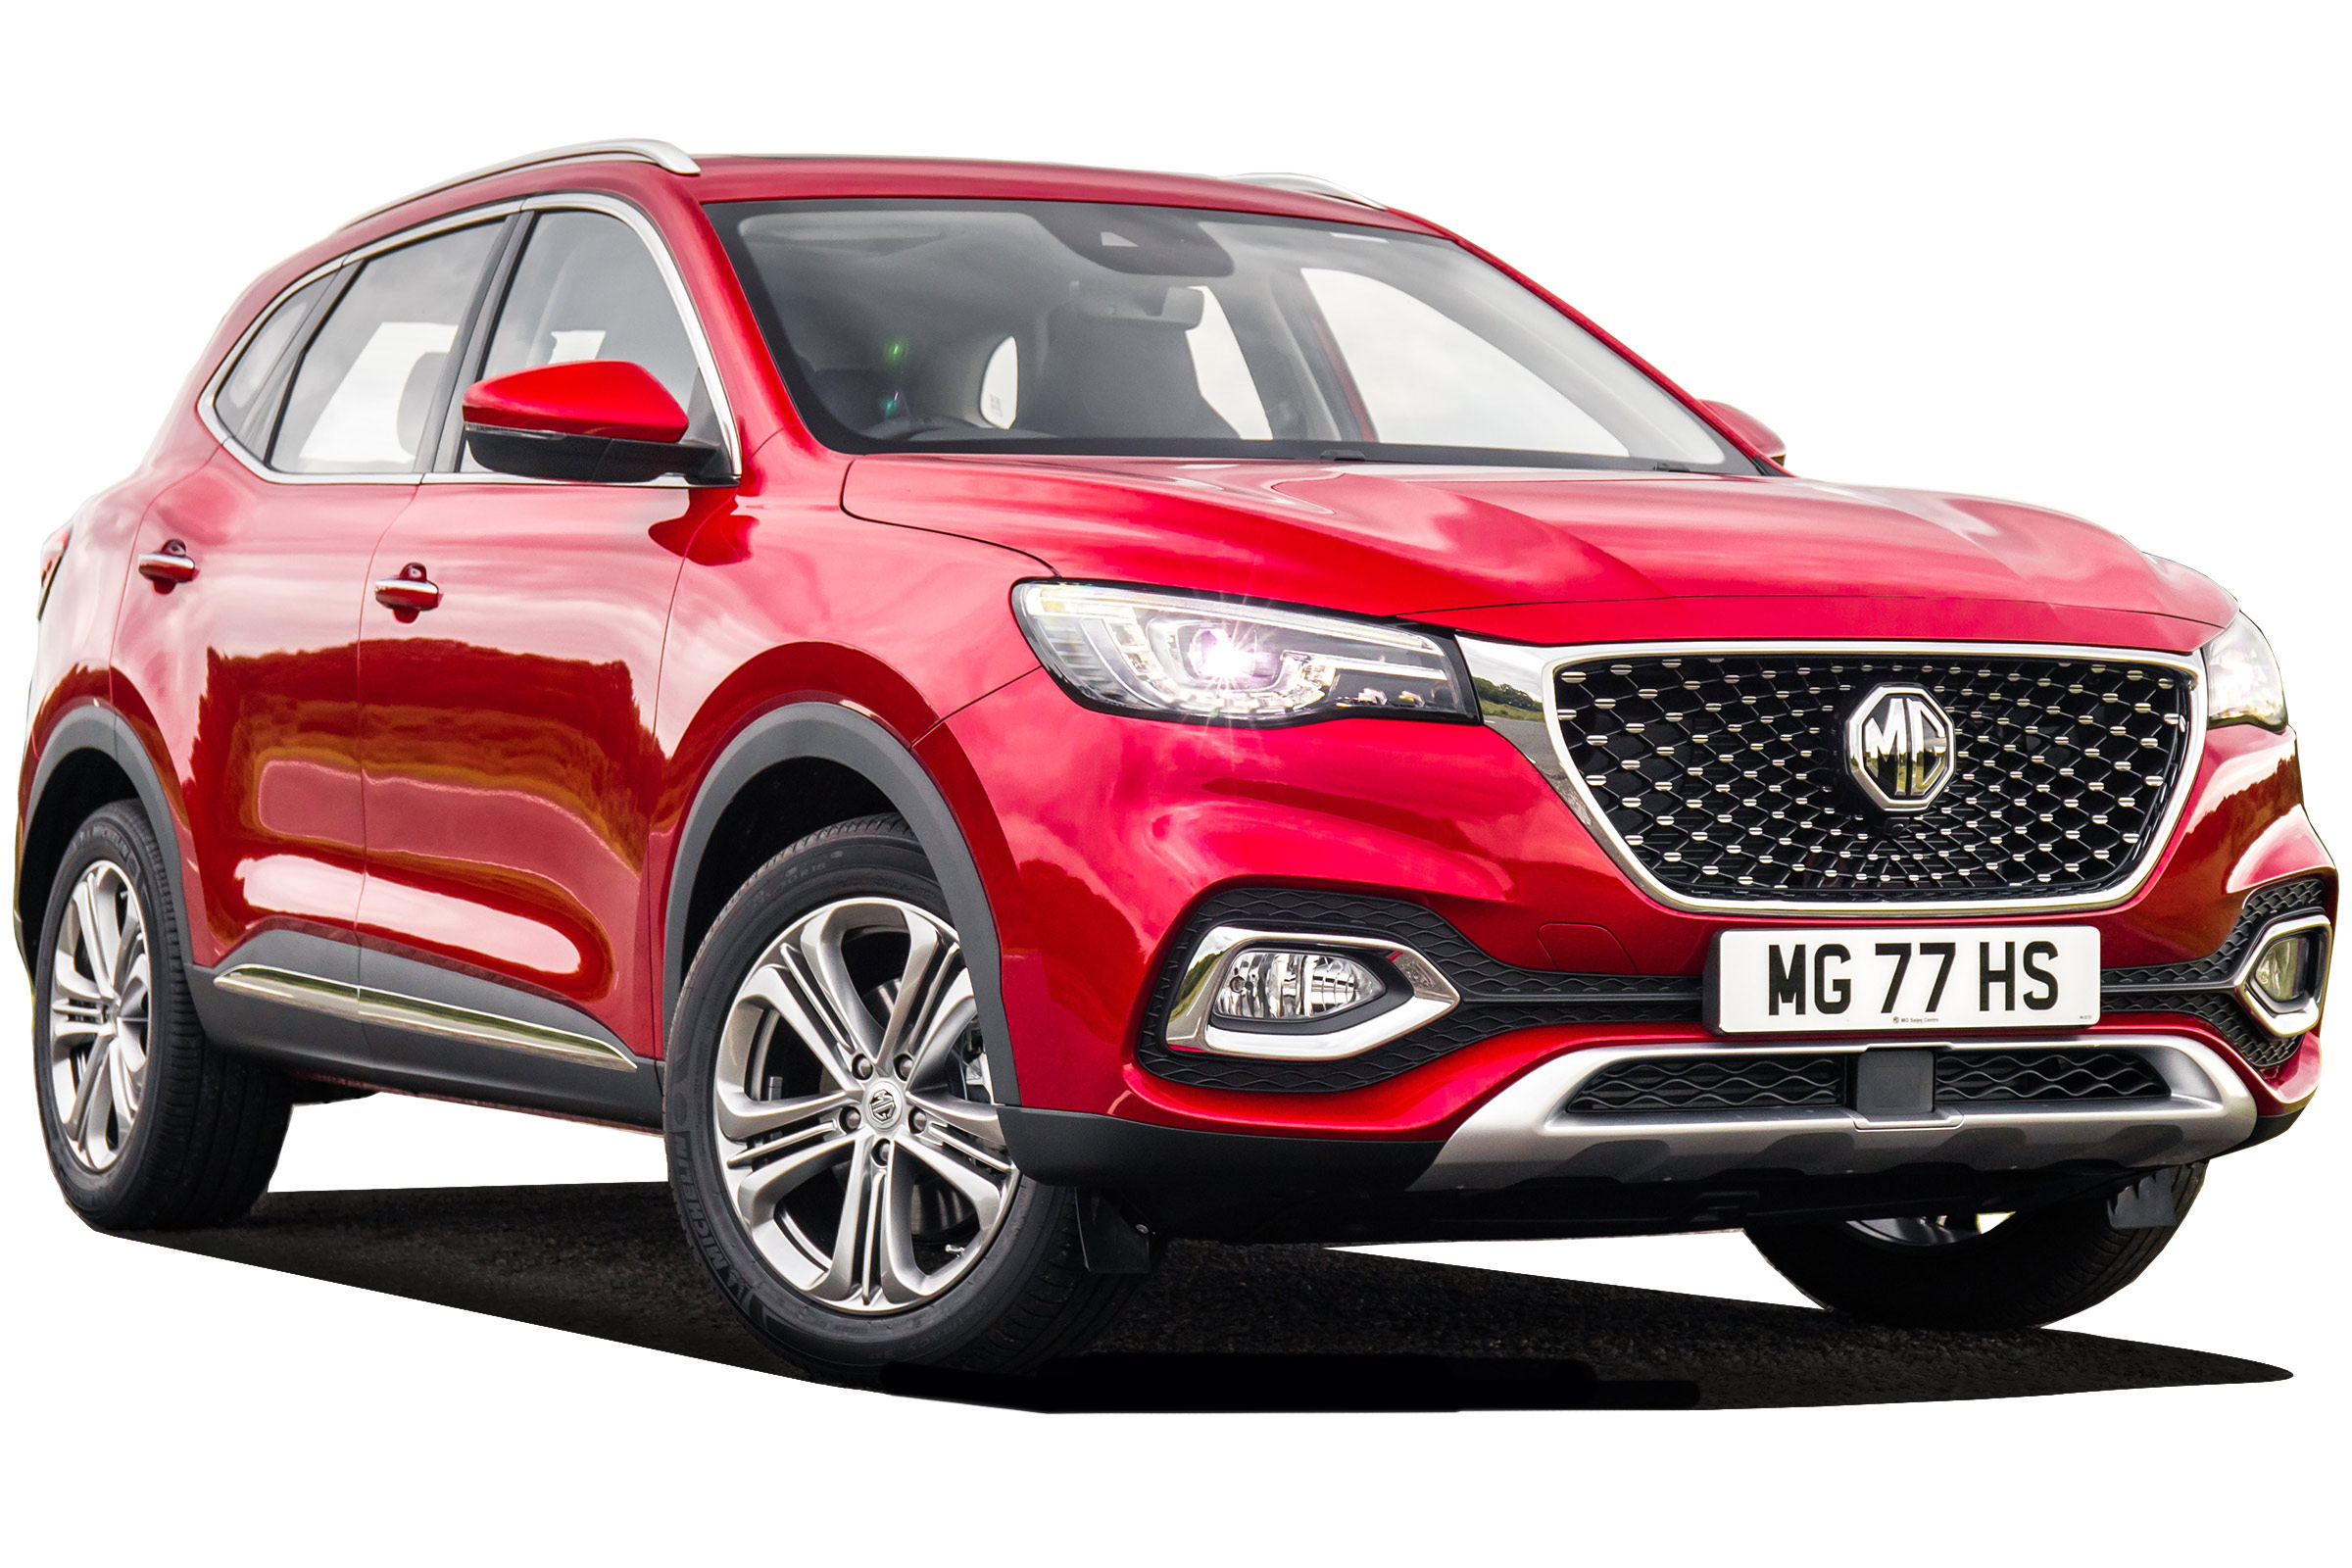 MG HS 1st Generation Price, Specs & Features in Pakistan